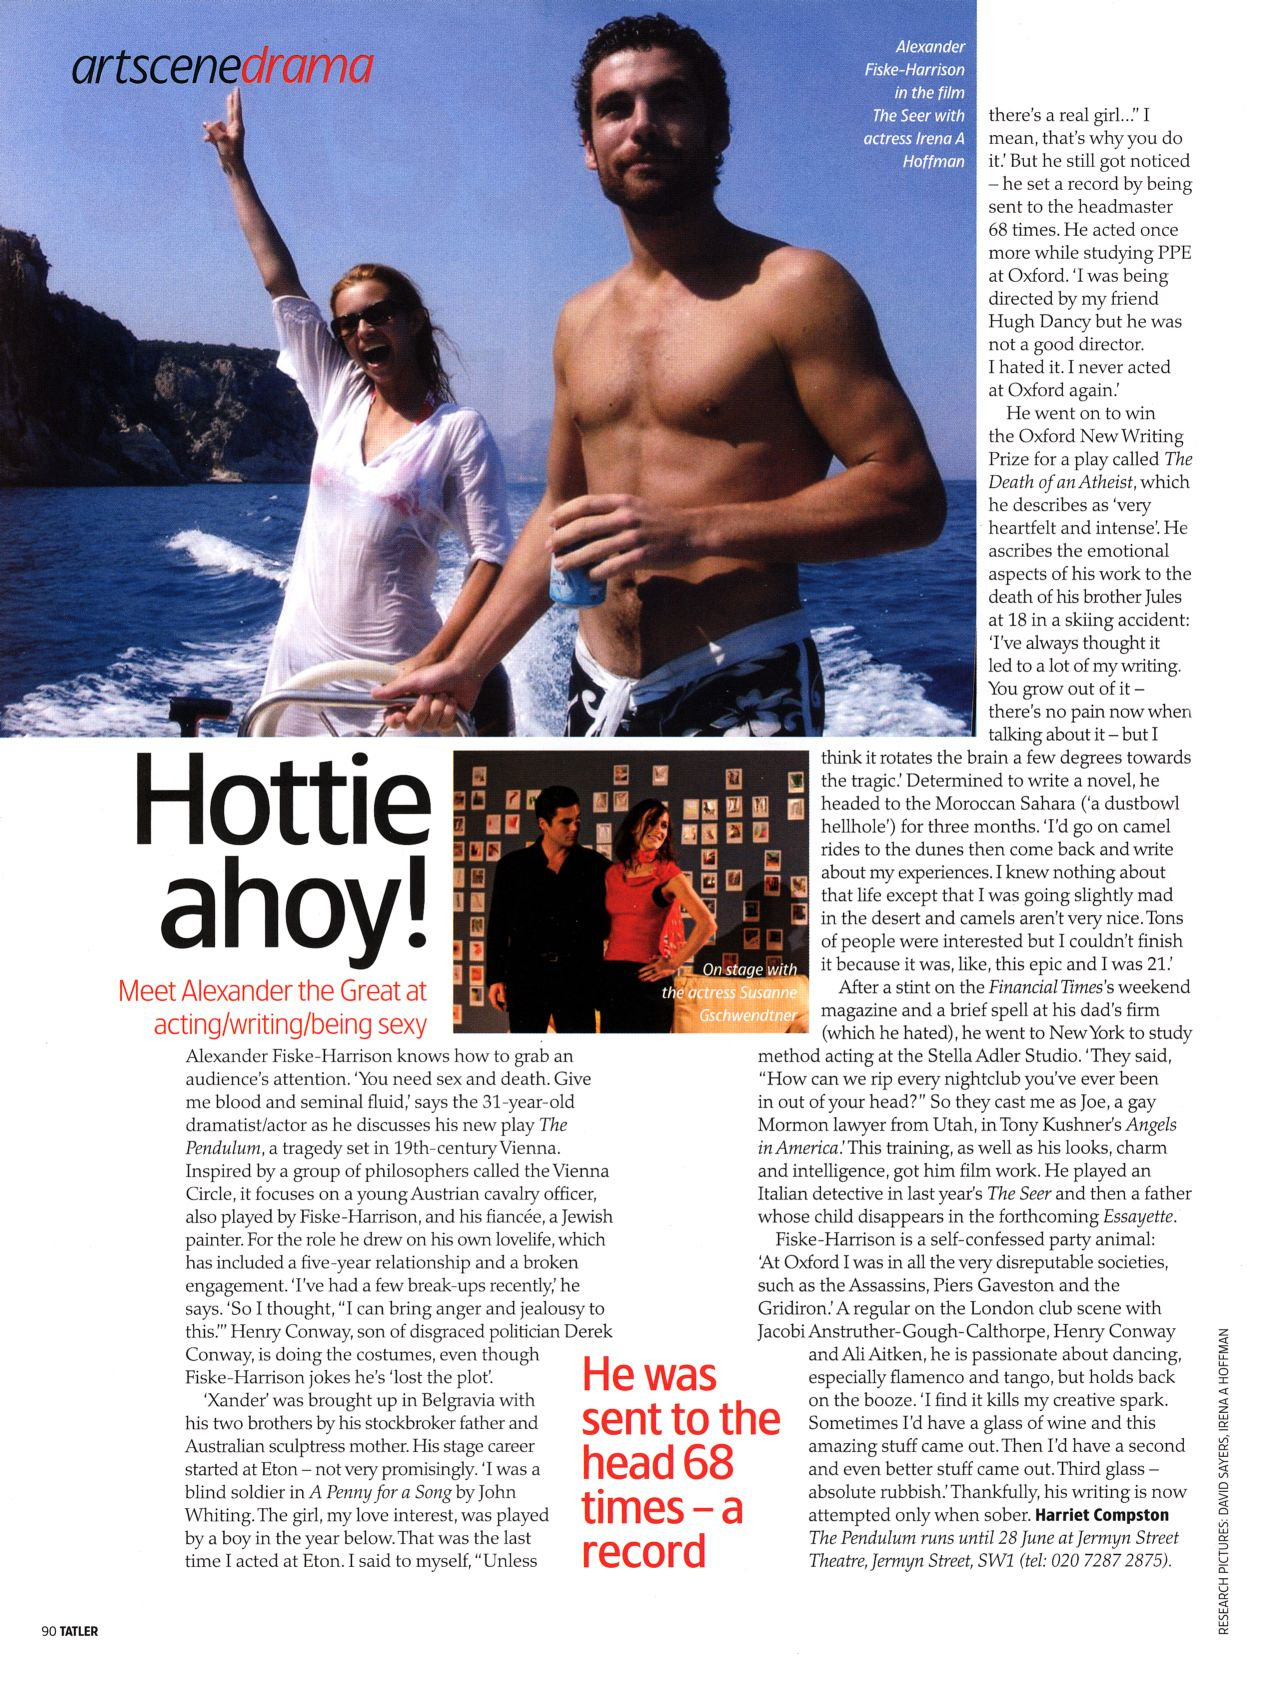 Tatler feature article on AF-H, July 2008